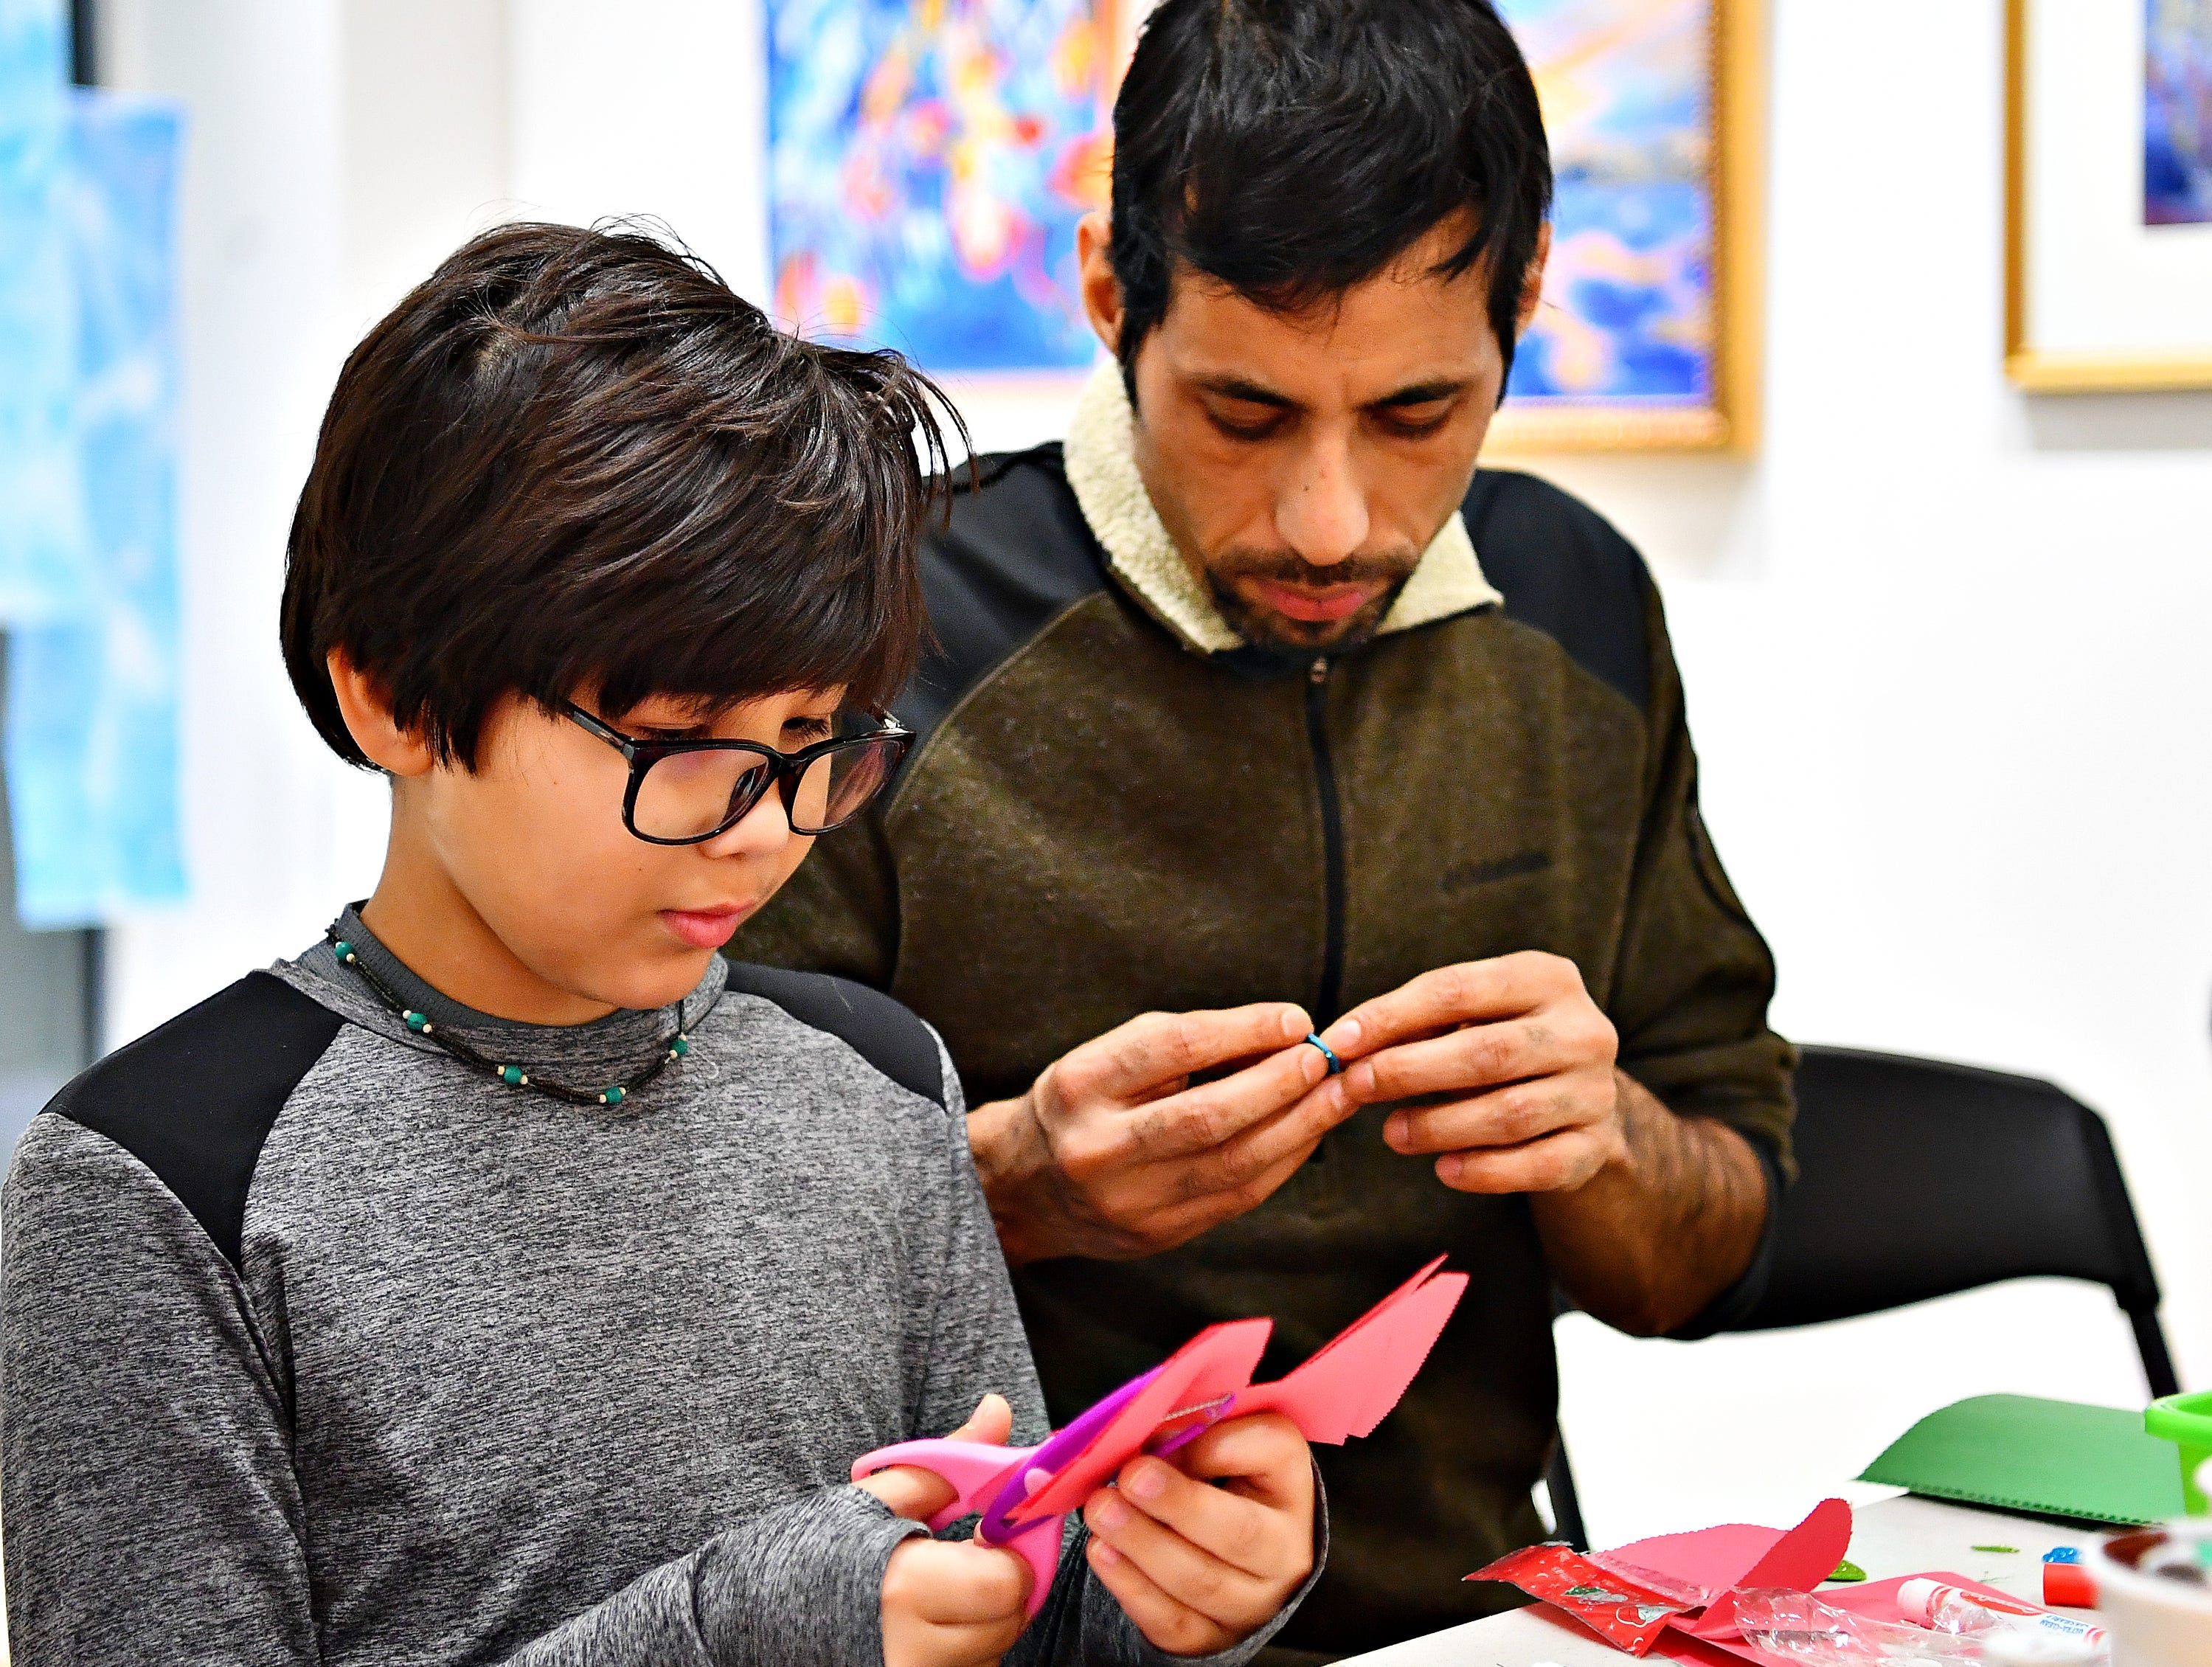 "Abhiyan Budhathoki, 9, left, of Spring Garden Township, and his father Nabaraj Budhathoki, of York City, make valentines to be given to resident at a local senior center during a First Friday Valentine art activity at Creative York in York City, Friday, Feb. 1, 2019. Each person making a Valentine for seniors would receive a 10,000 Acts of Kindness ""Kindness Coin"" which will guarantee the recipient a seat at the table during the Celebration of York's Unity at Penn Park on June 30. Dawn J. Sagert photo"